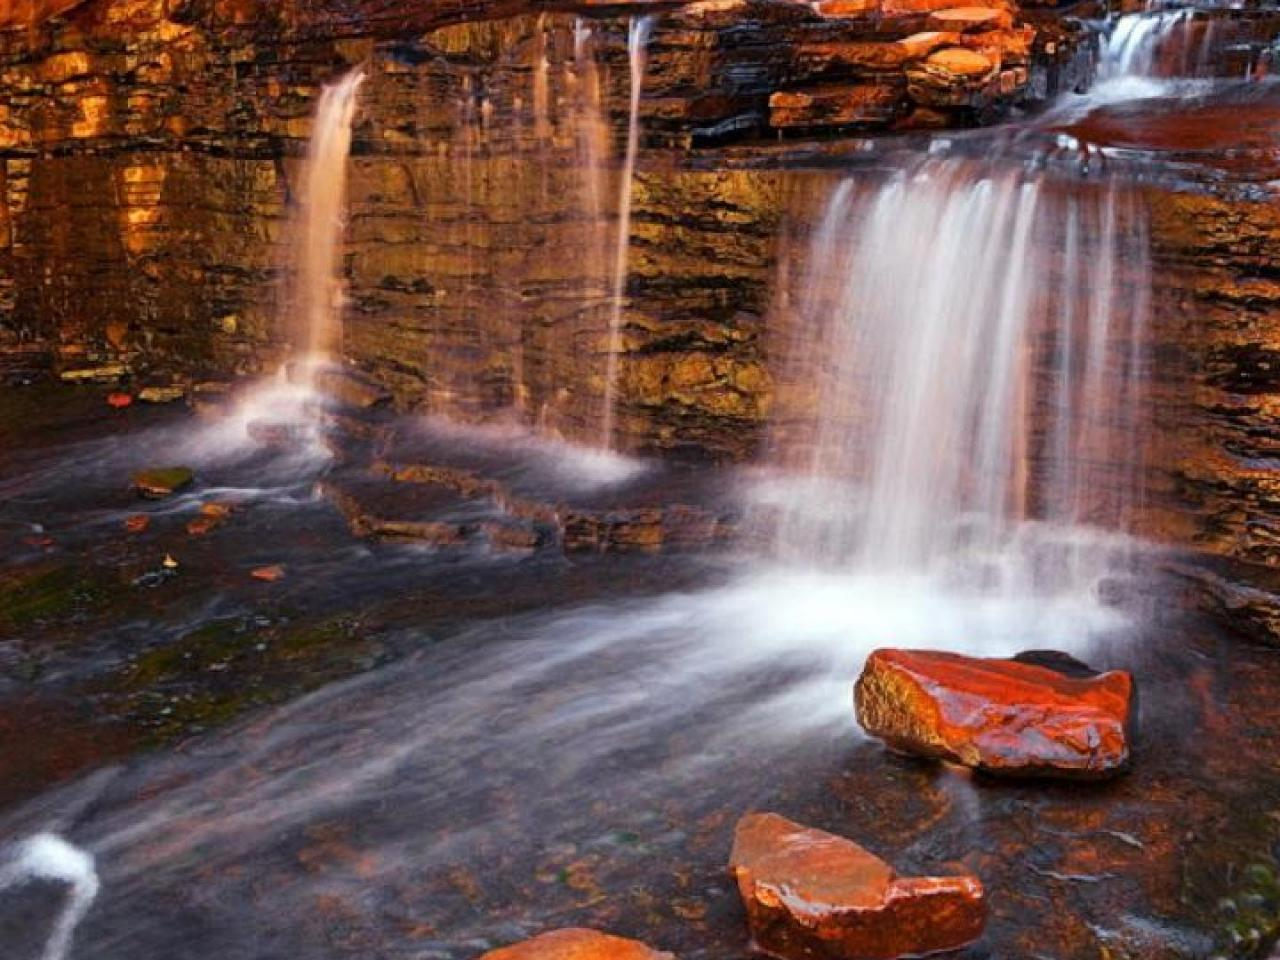 Free 3d Wallpapers For Pc Downloads Hd Nature Wallpapers With Waterfall Picture In 1920x1080